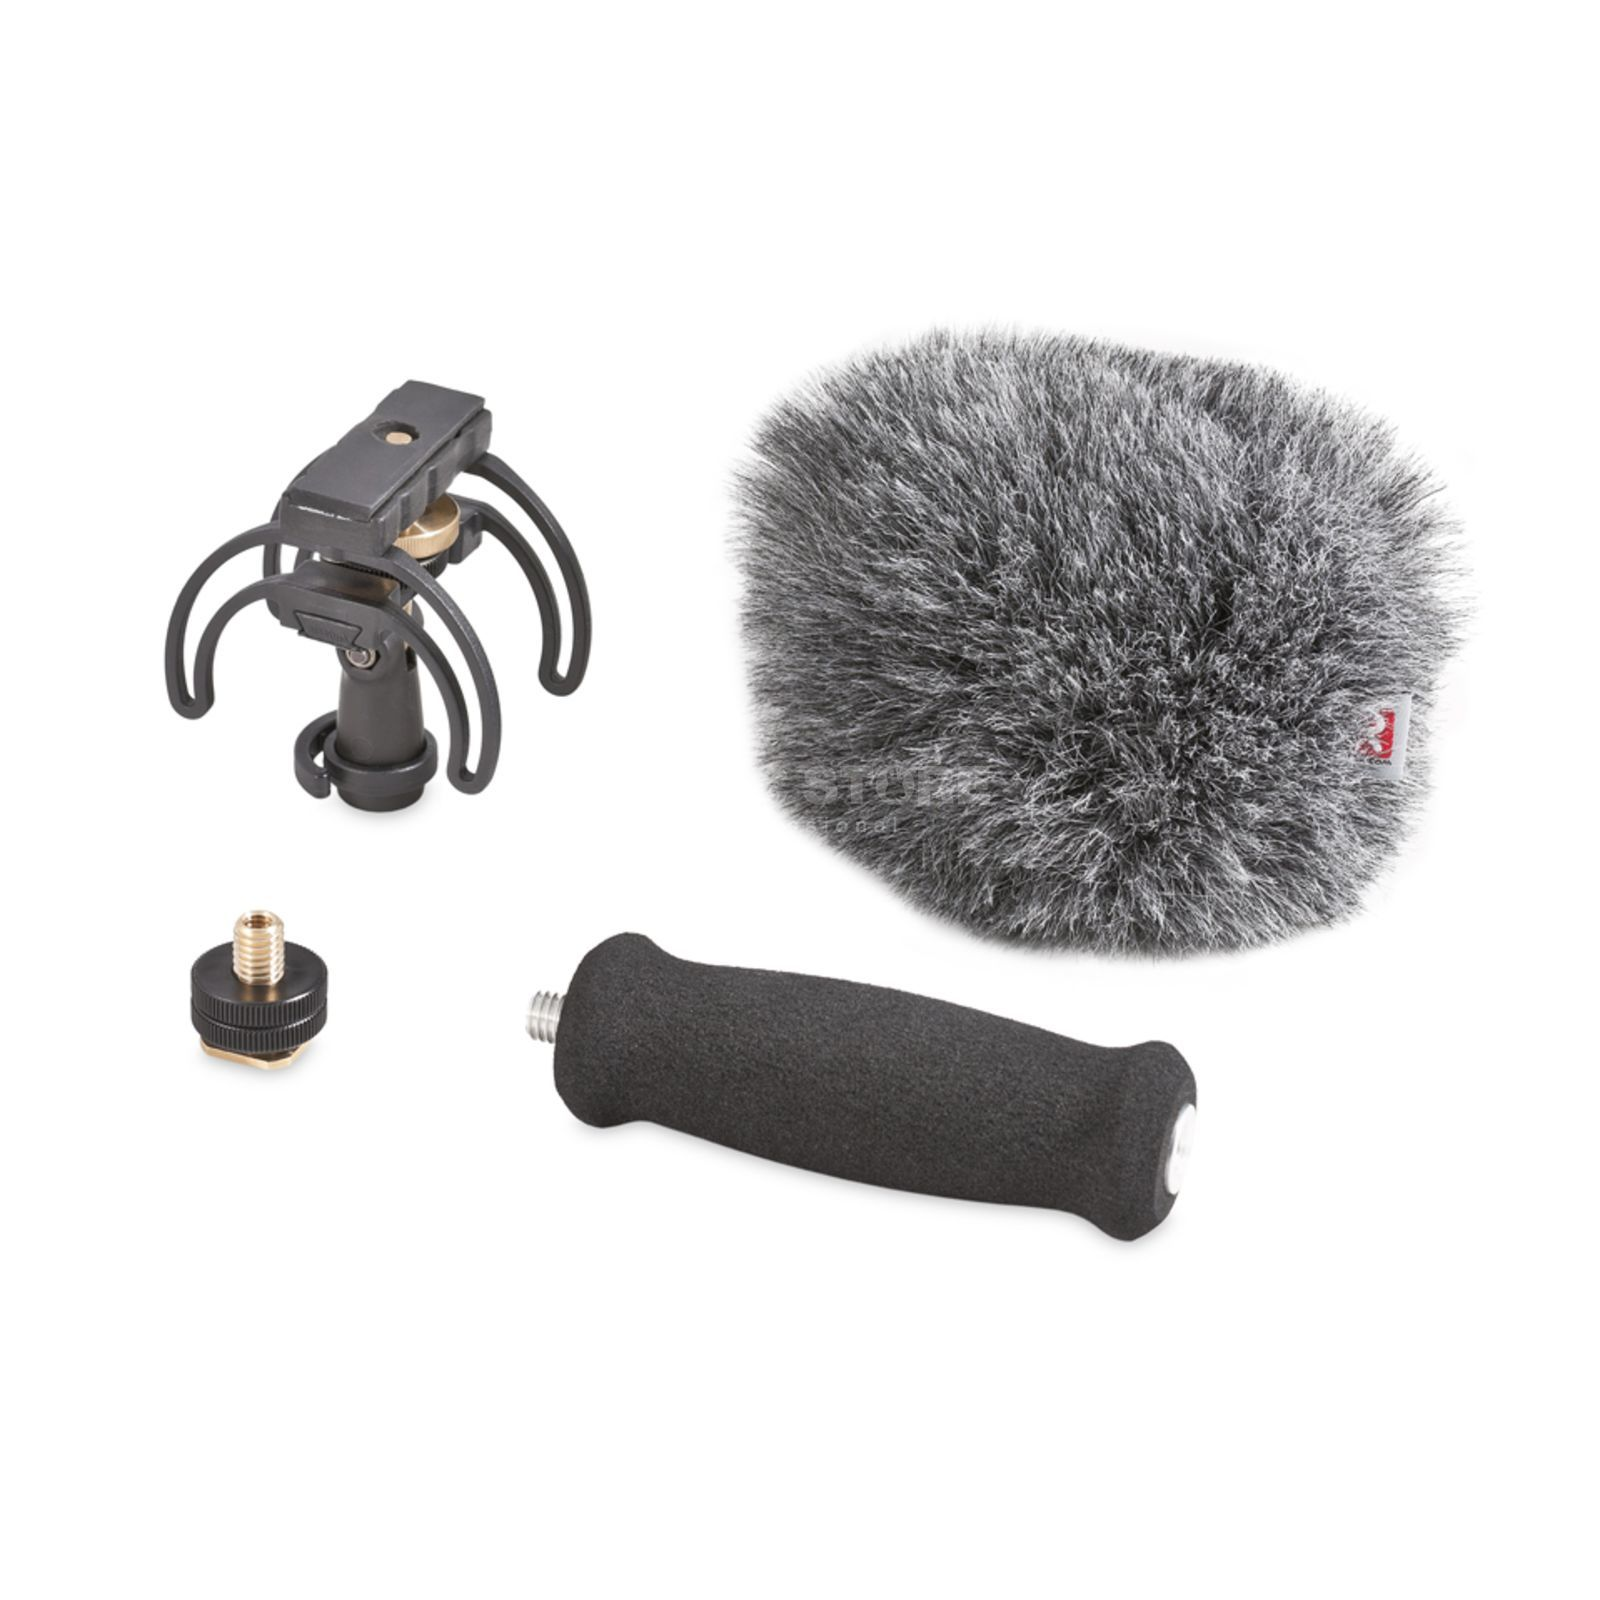 Rycote Portable Recorder Audio Kit for Zoom H4N Produktbillede